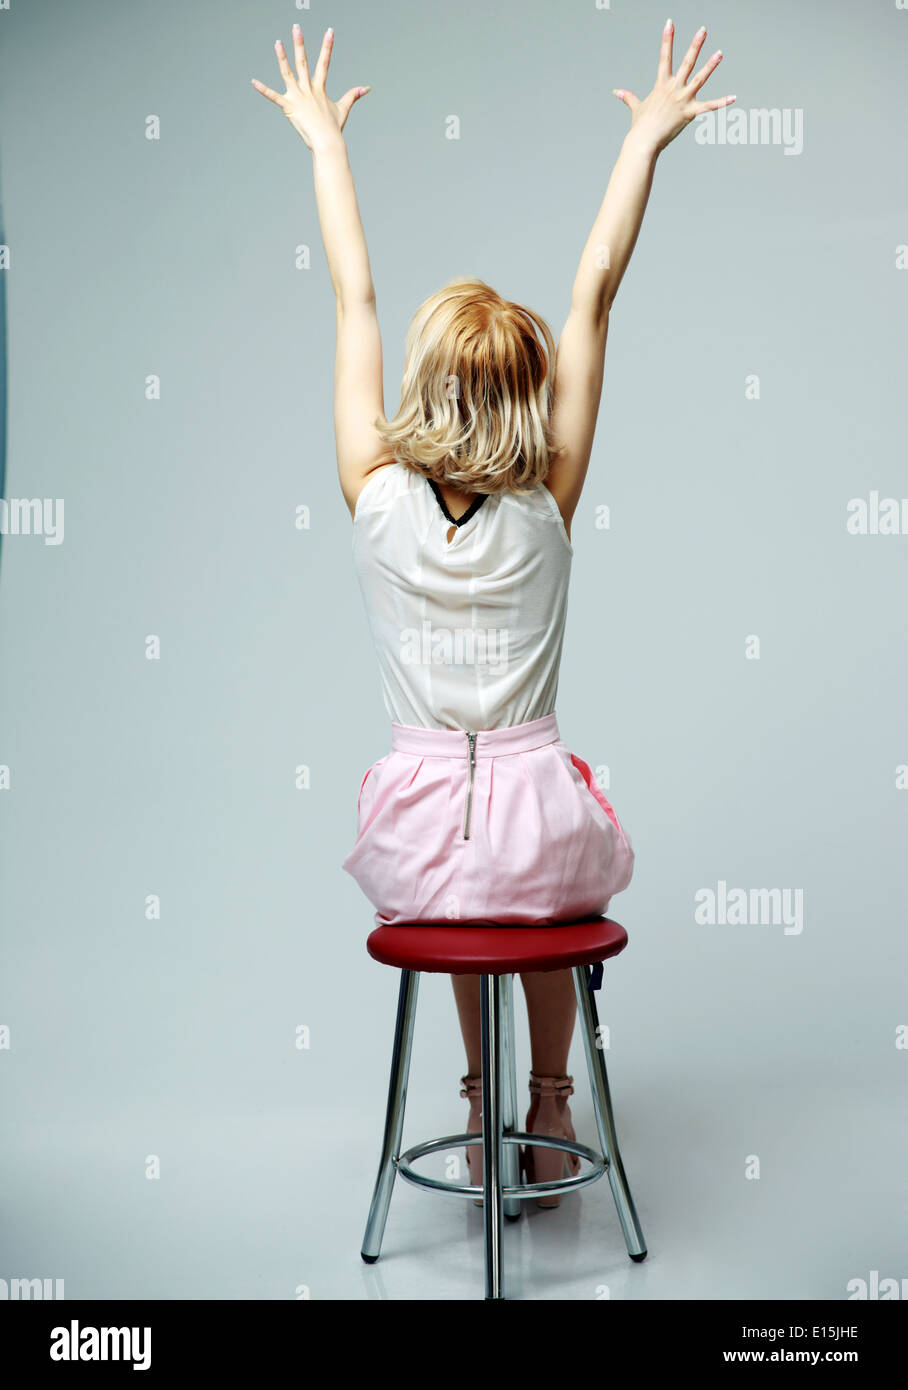 back view portrait of a young woman sitting with hands raised up on gray background - Stock Image